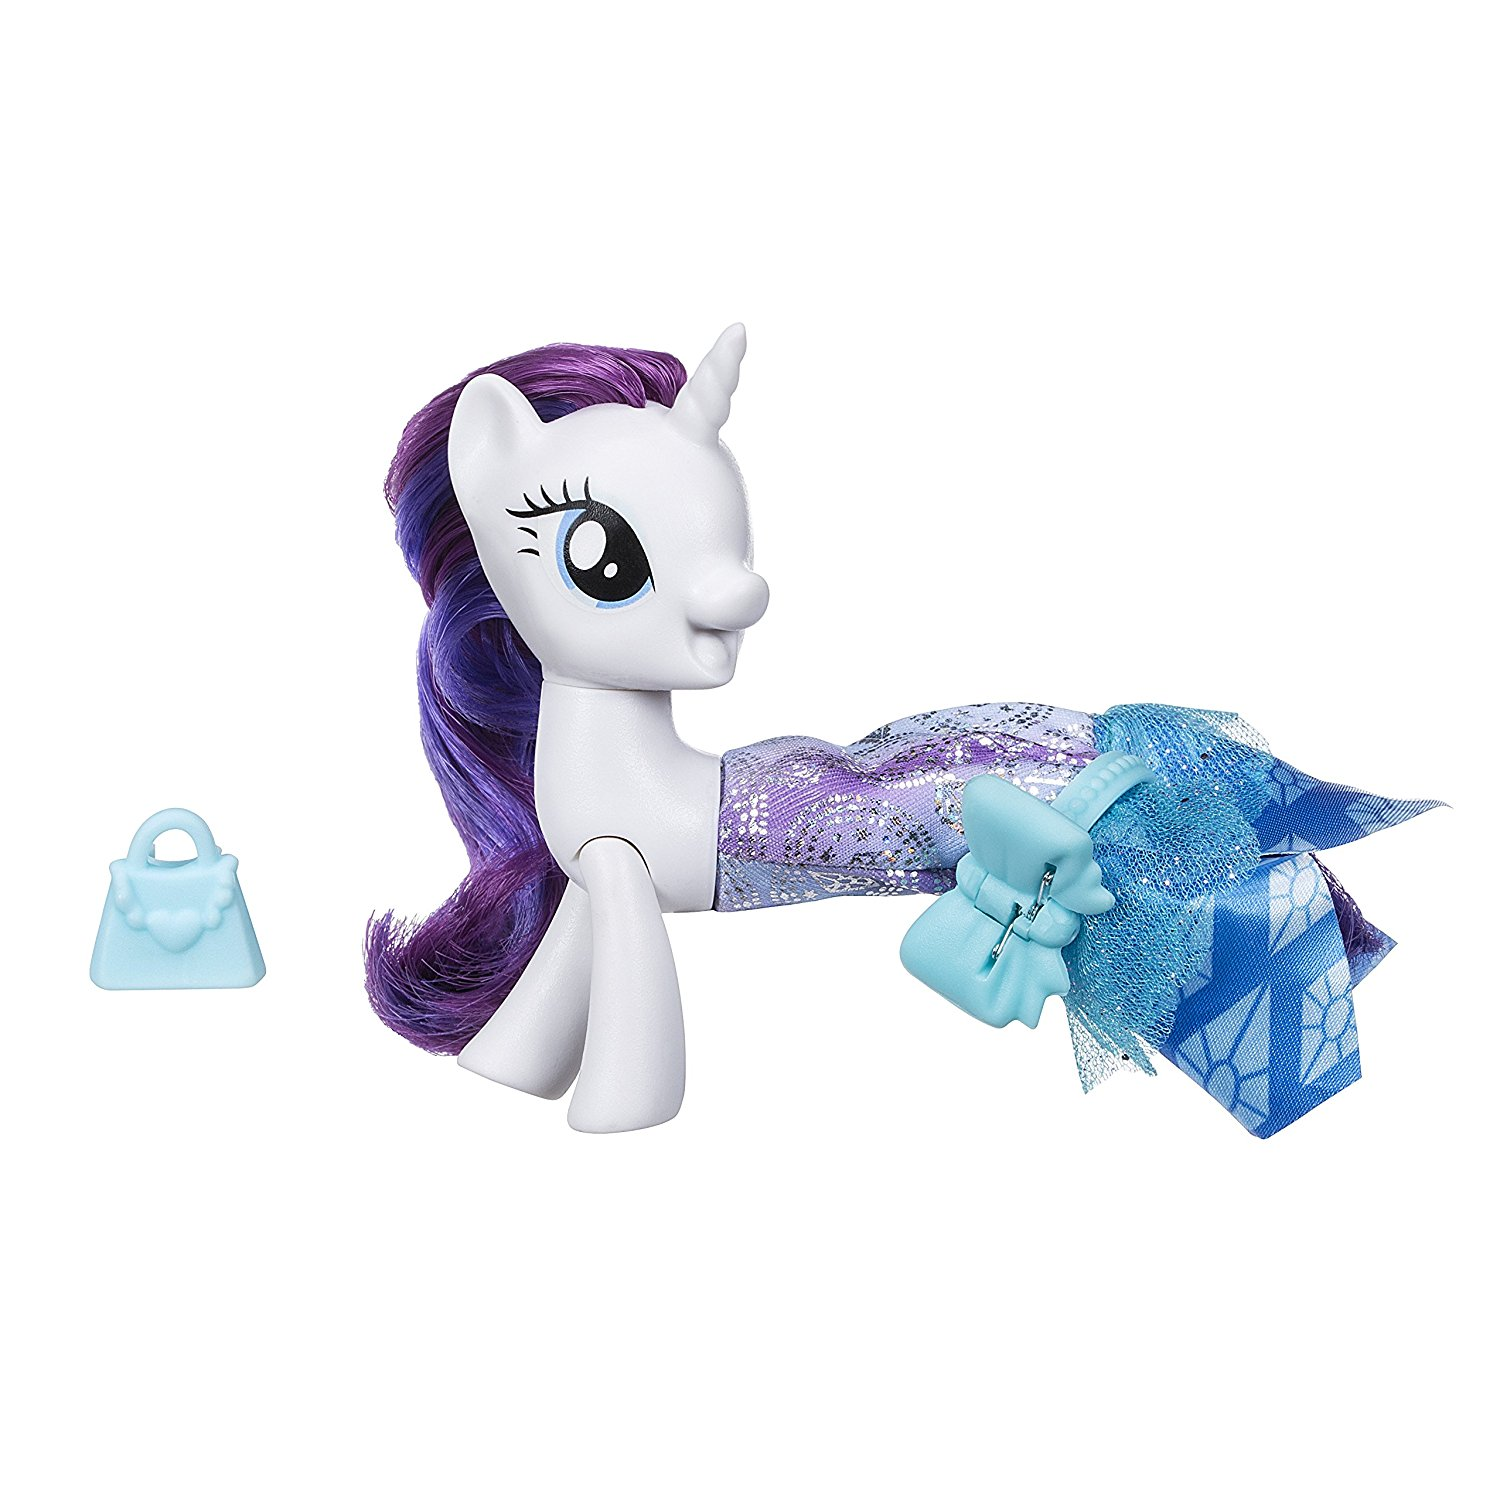 Mlp My Little Pony The Movie Brushables Mlp Merch